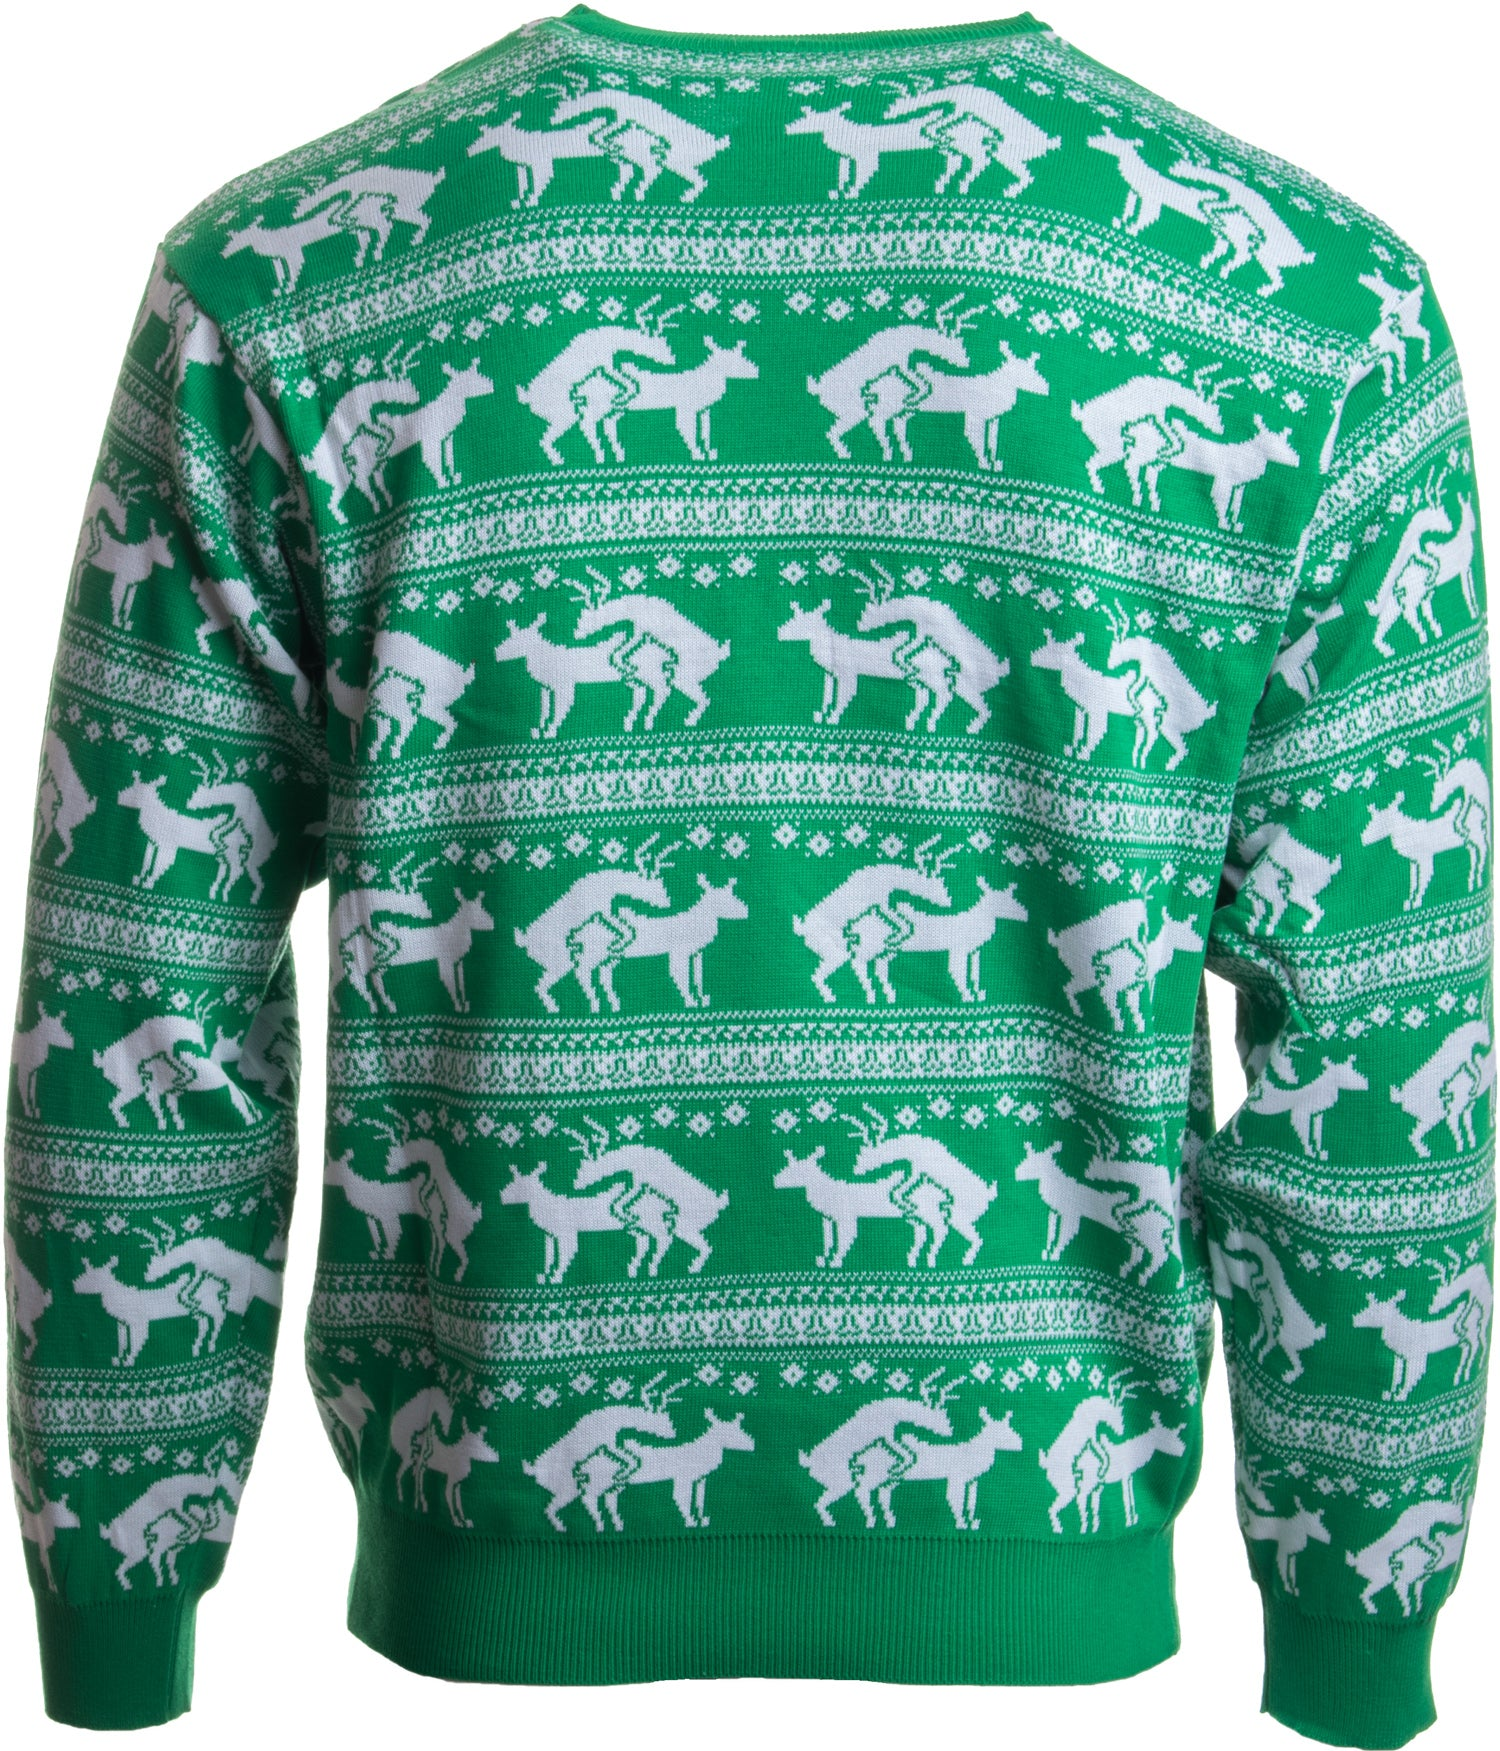 a57ff8da9d0 ... Green Reindeer Humping Ugly Christmas Sweater w  Holiday Insertion    Christmas Dongs ...